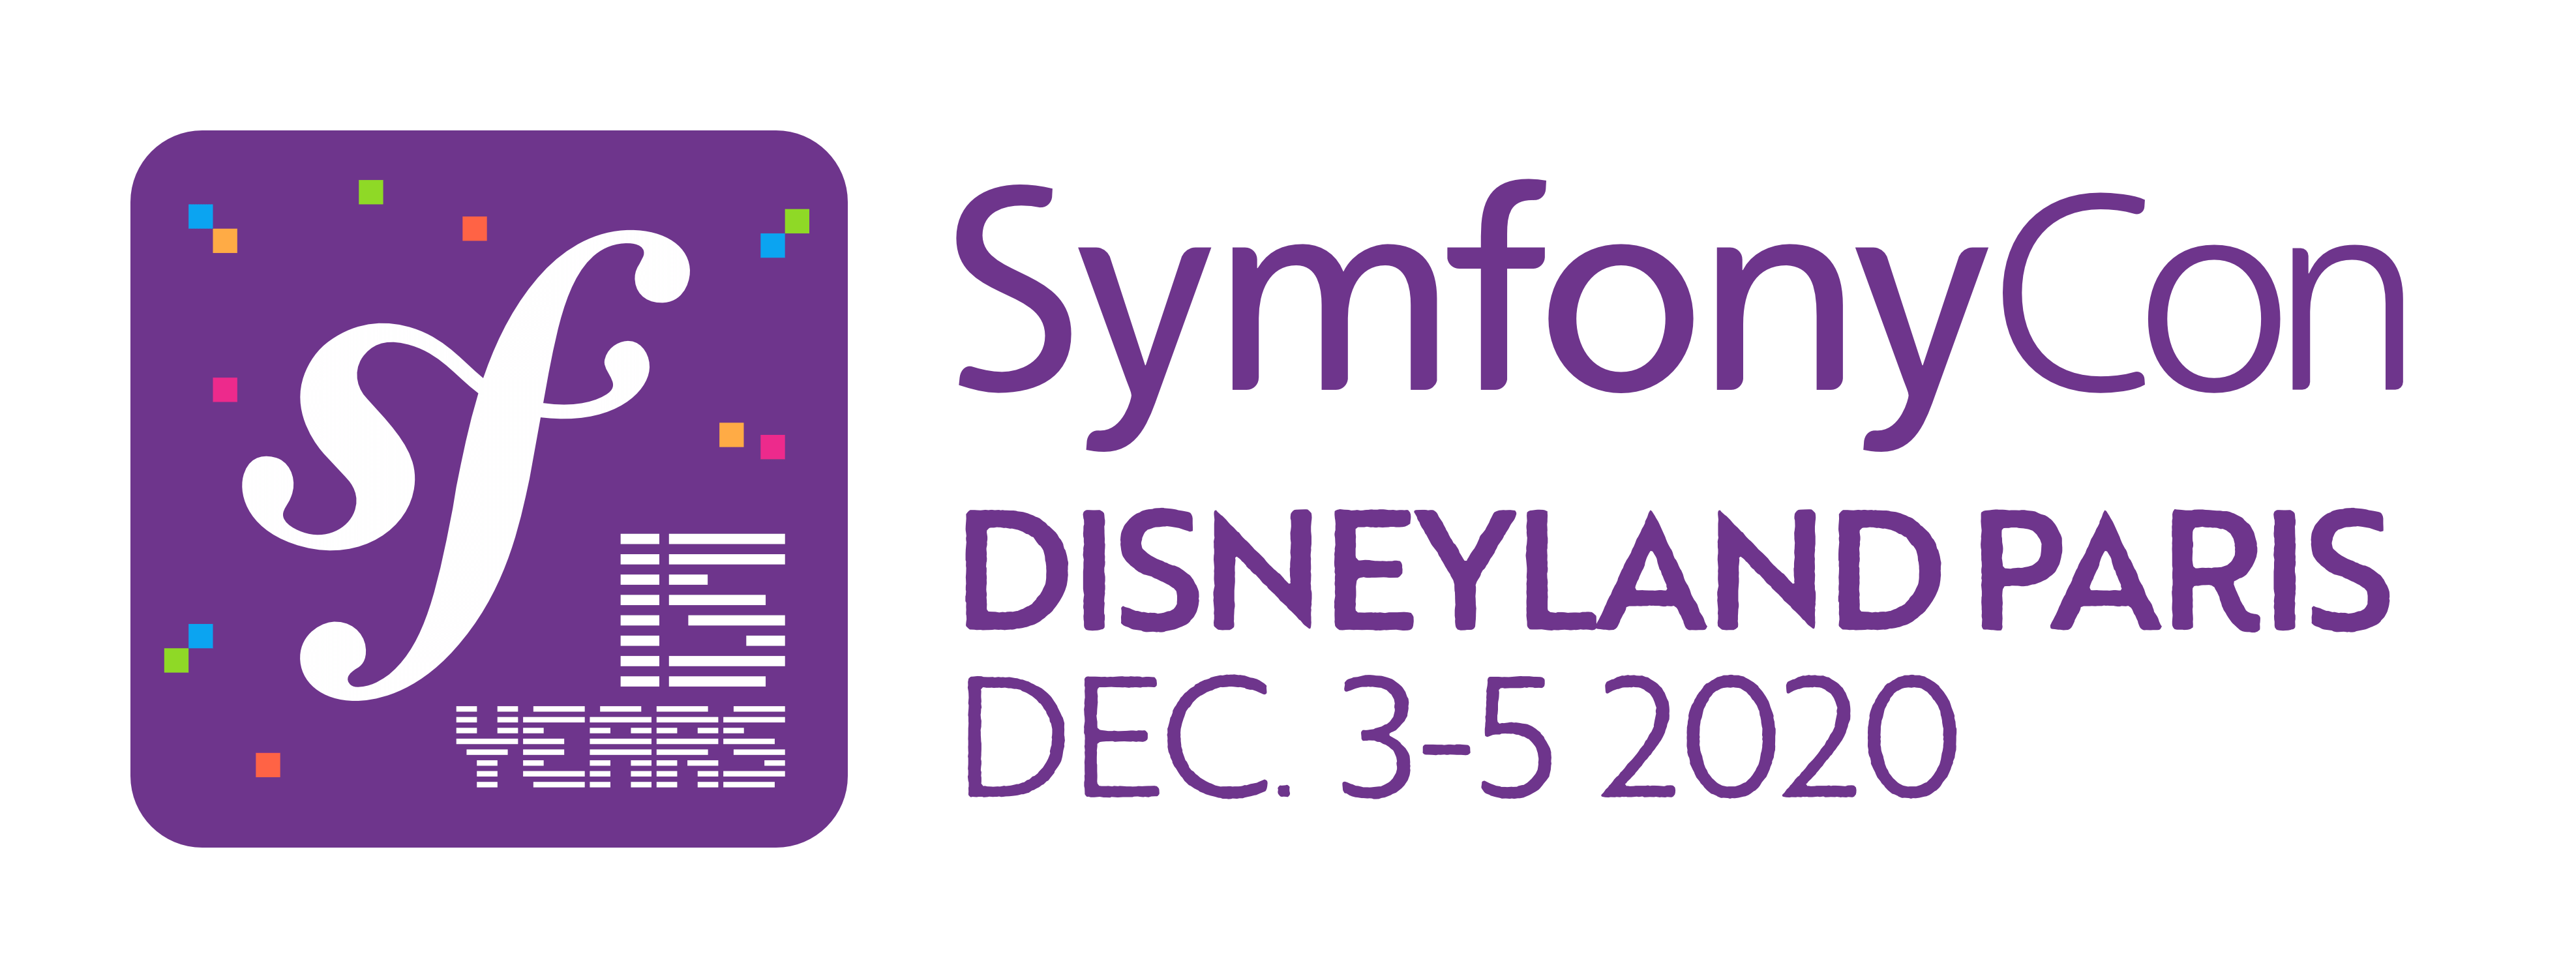 SymfonyCon Disneyland Paris 2020 Conference Logo